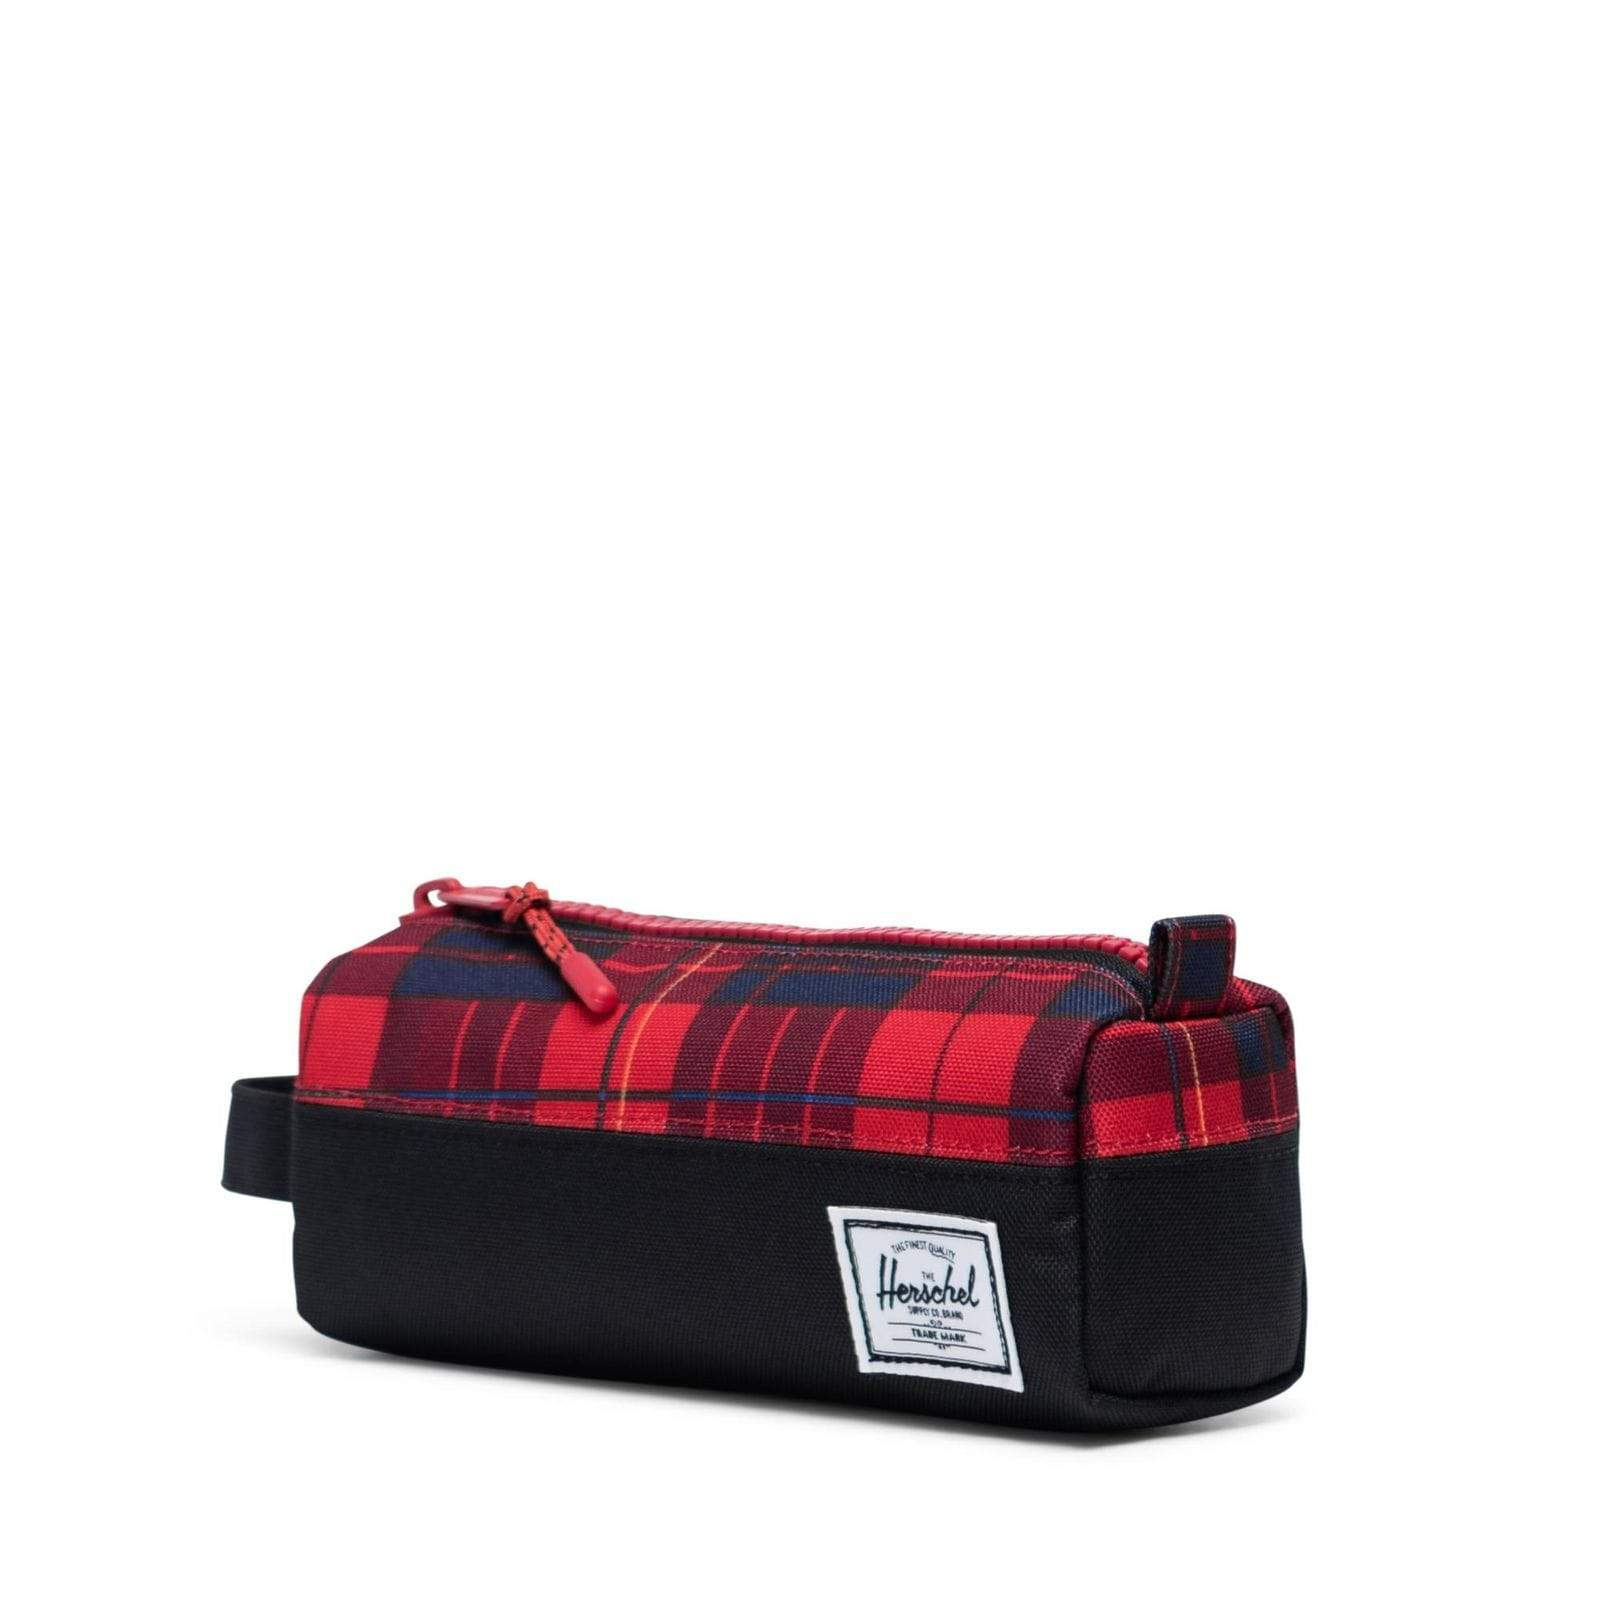 Herschel Settlement Case Black/Winter Plaid tolltartó